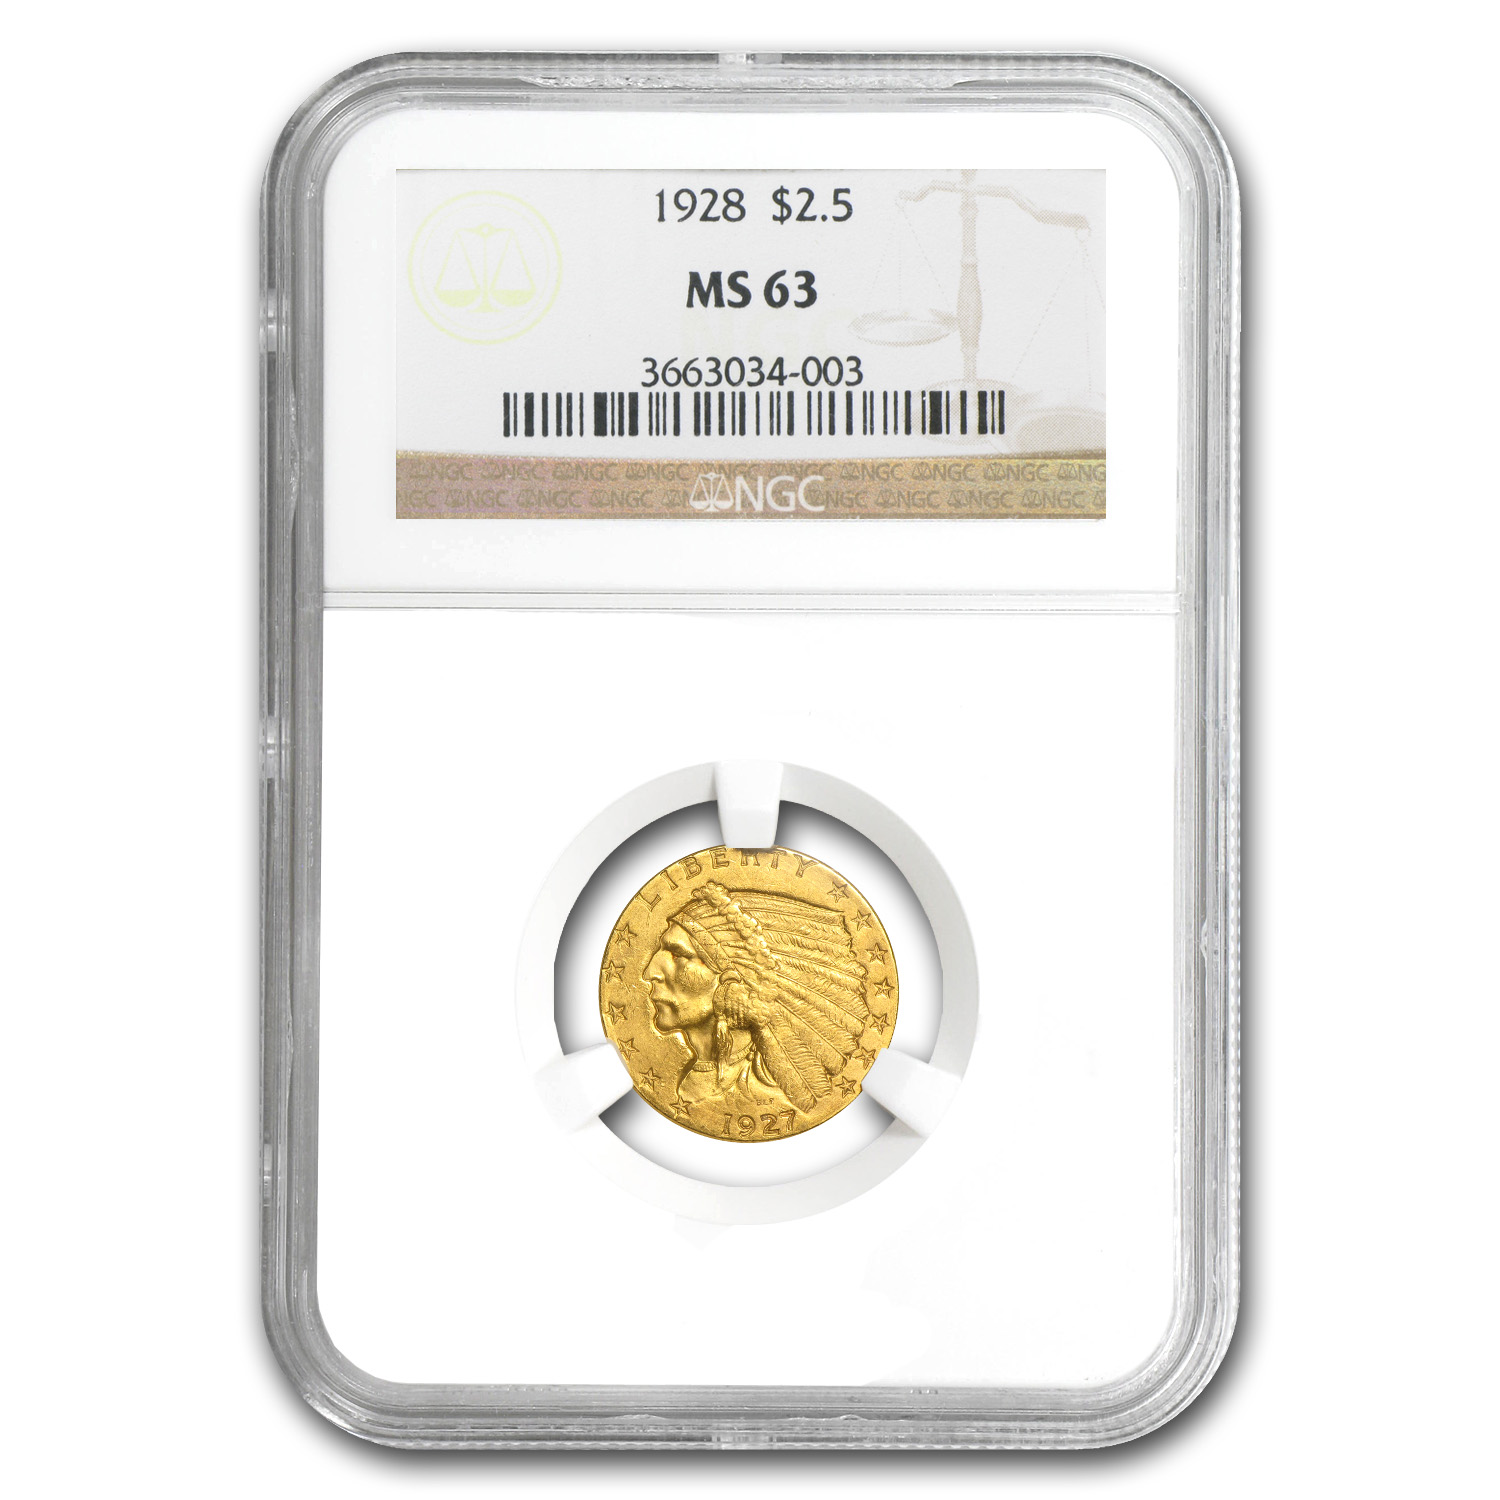 $2.50 Indian Gold Quarter Eagle Date Set - MS-63 - NGC - 5 Coins